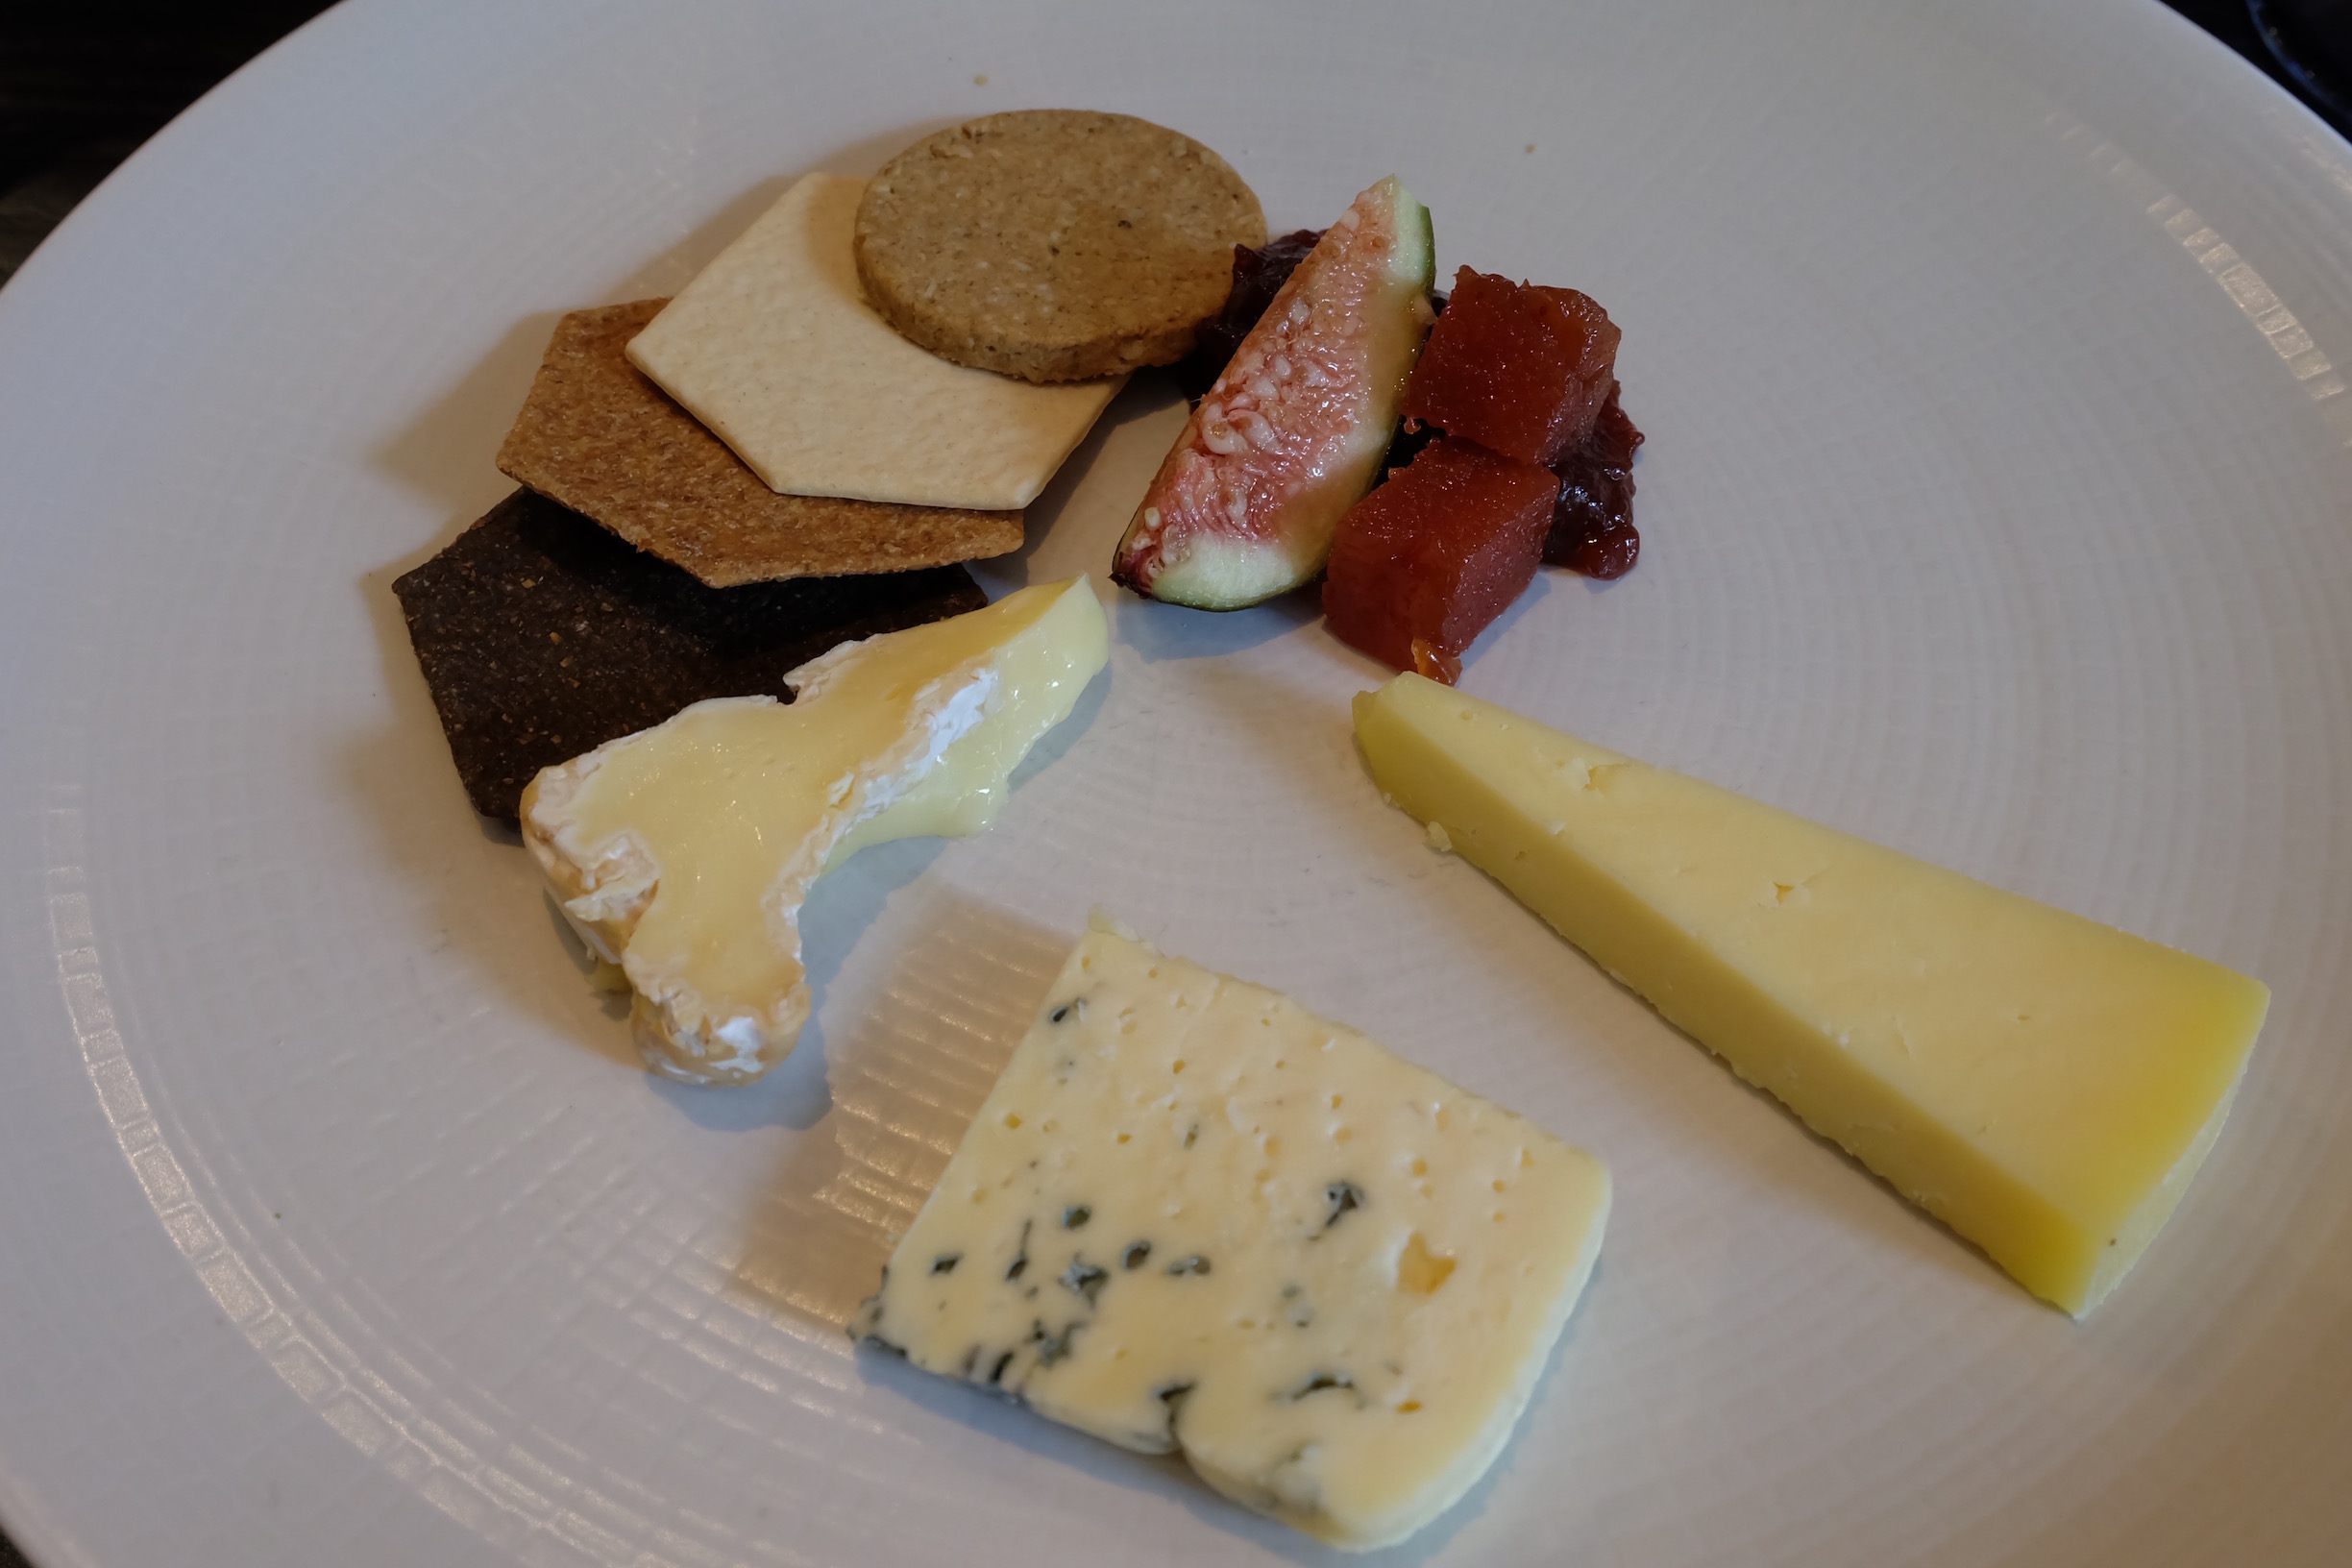 Course 4: Cheese Platter  at Hotel du Vin in Glasgow